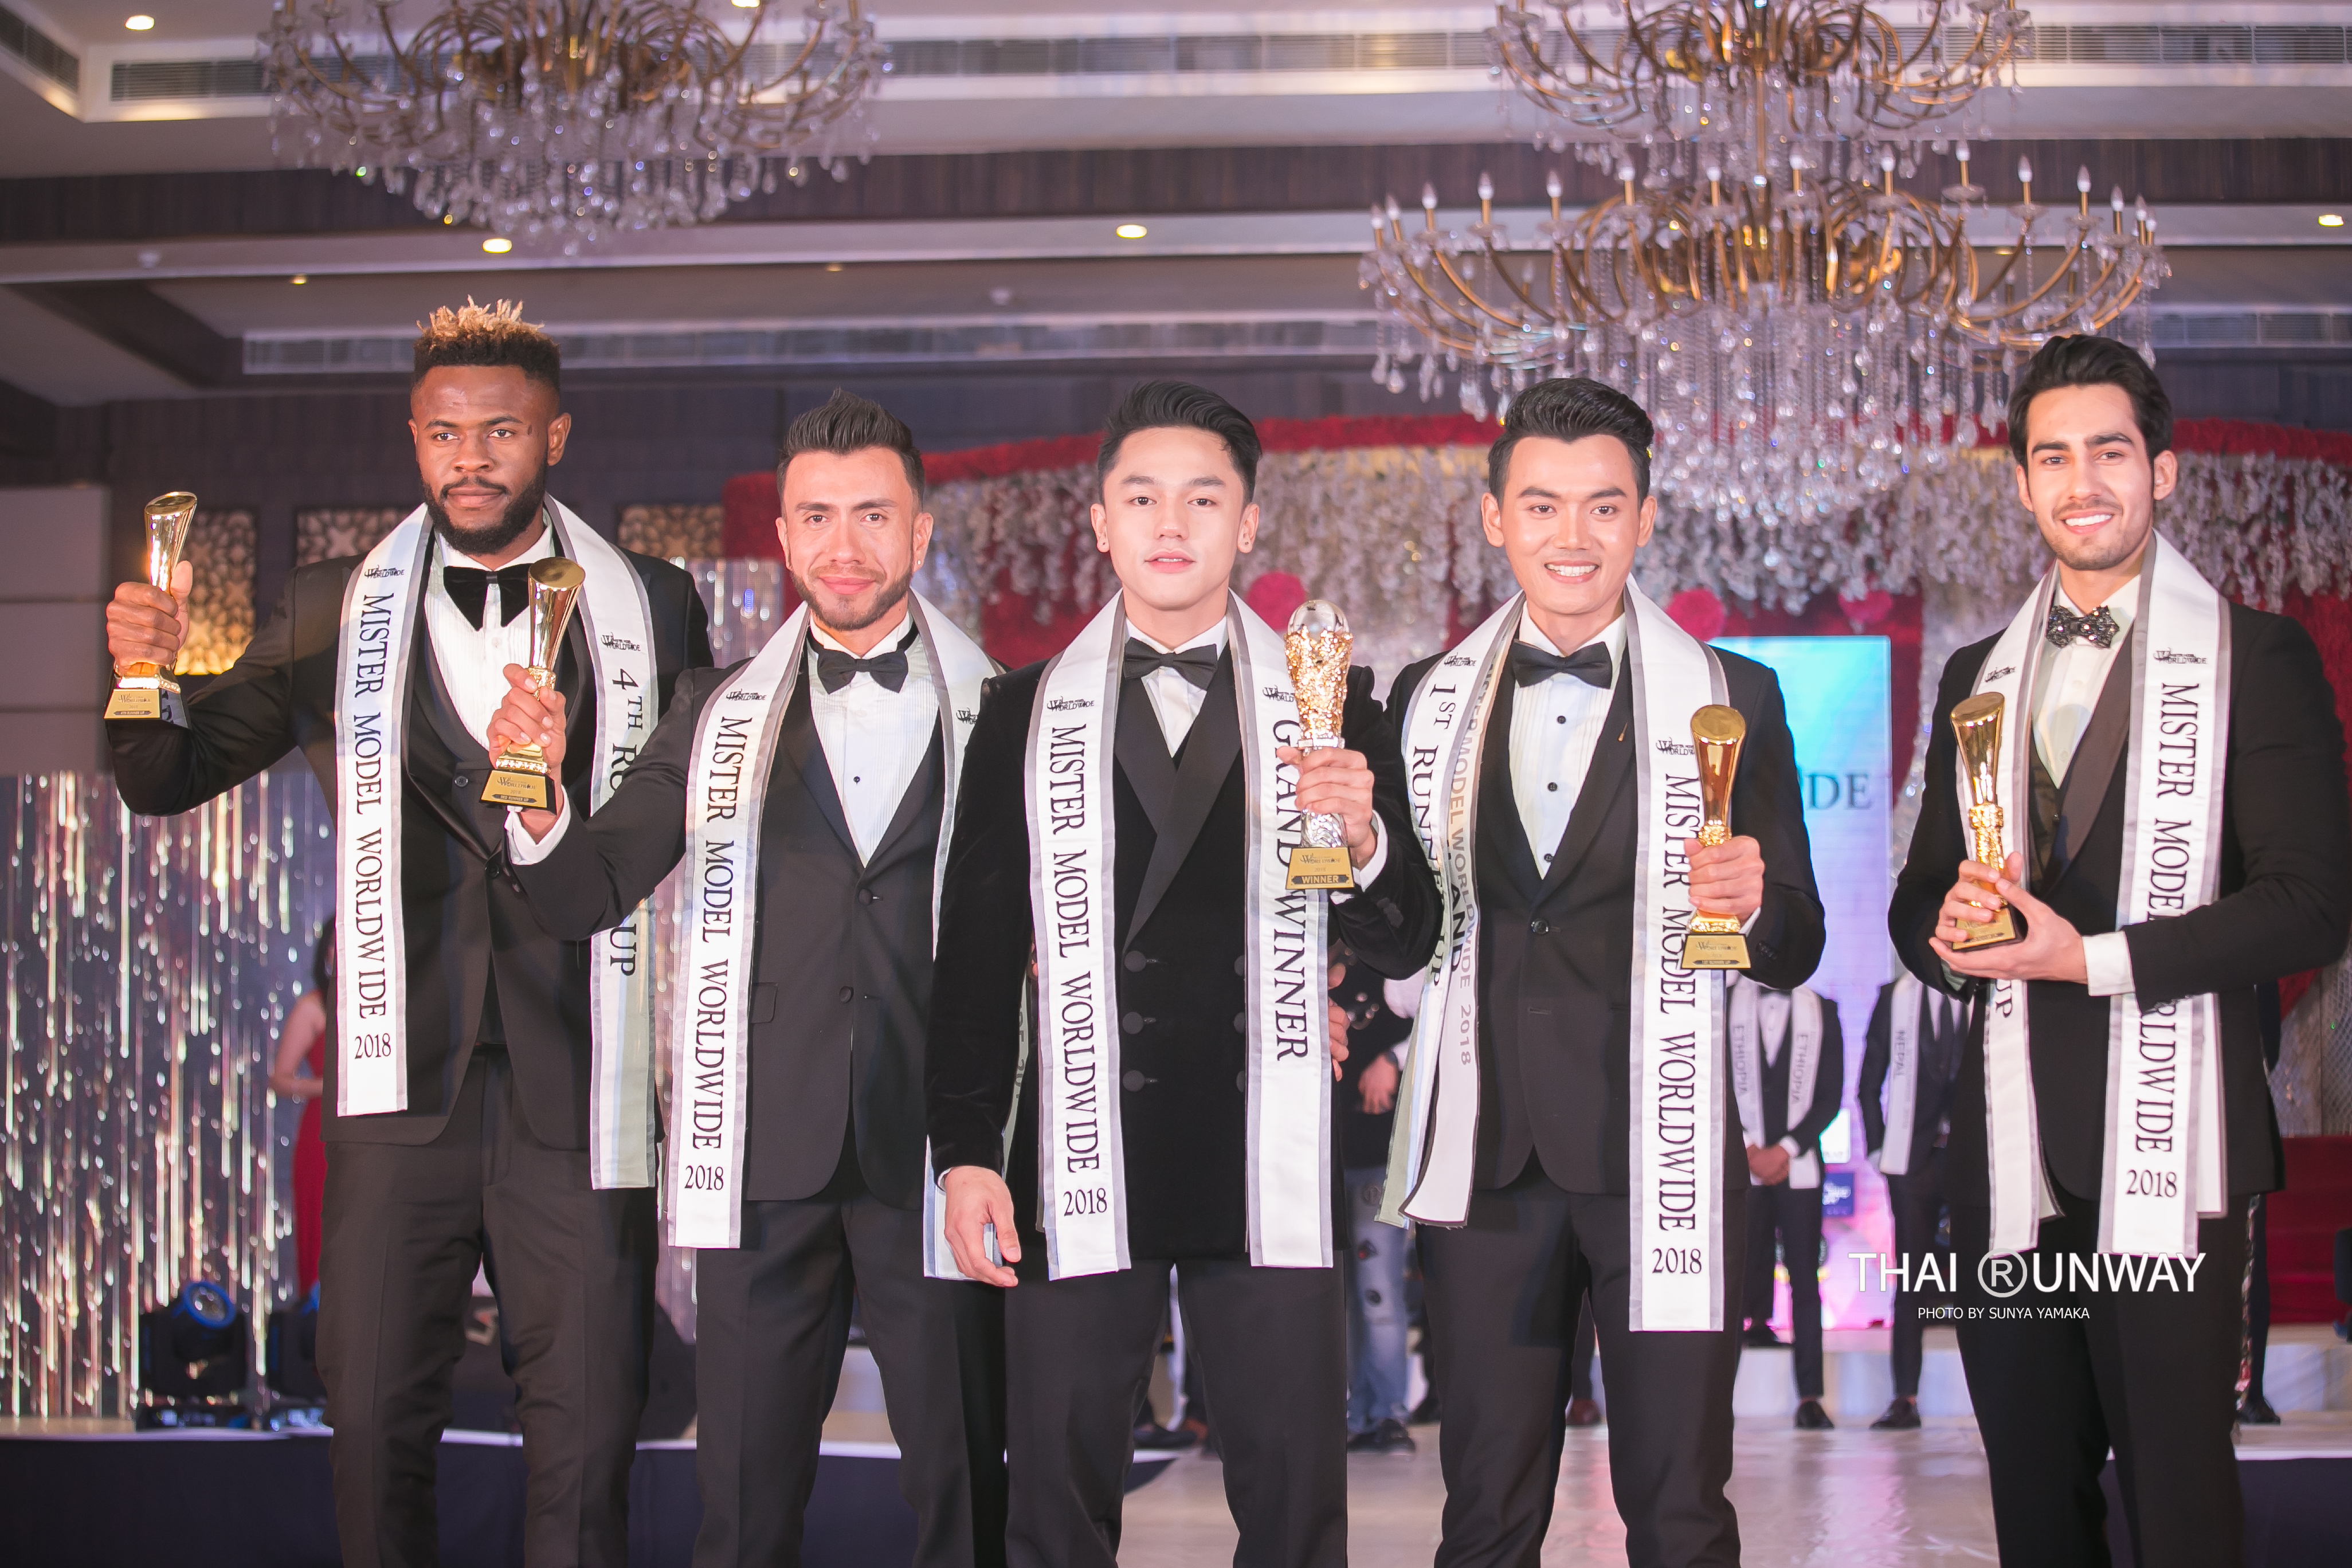 Mister Model Worldwide 2018 Top 5 titleholders. (From left to right) Ogburie Ebuka Pascal, 4th Runner Up from Nigeria; Hugo L Mendez, 3rd Runner Up from Bolivia; Carlo Pasion, Winner from Philippines; Yutthakon Buddeesee, 1st Runner Up from Thailand and Suraj Dahiya, 2nd Runner Up from India. Picture by Thai Runway / Sunya Yamaka